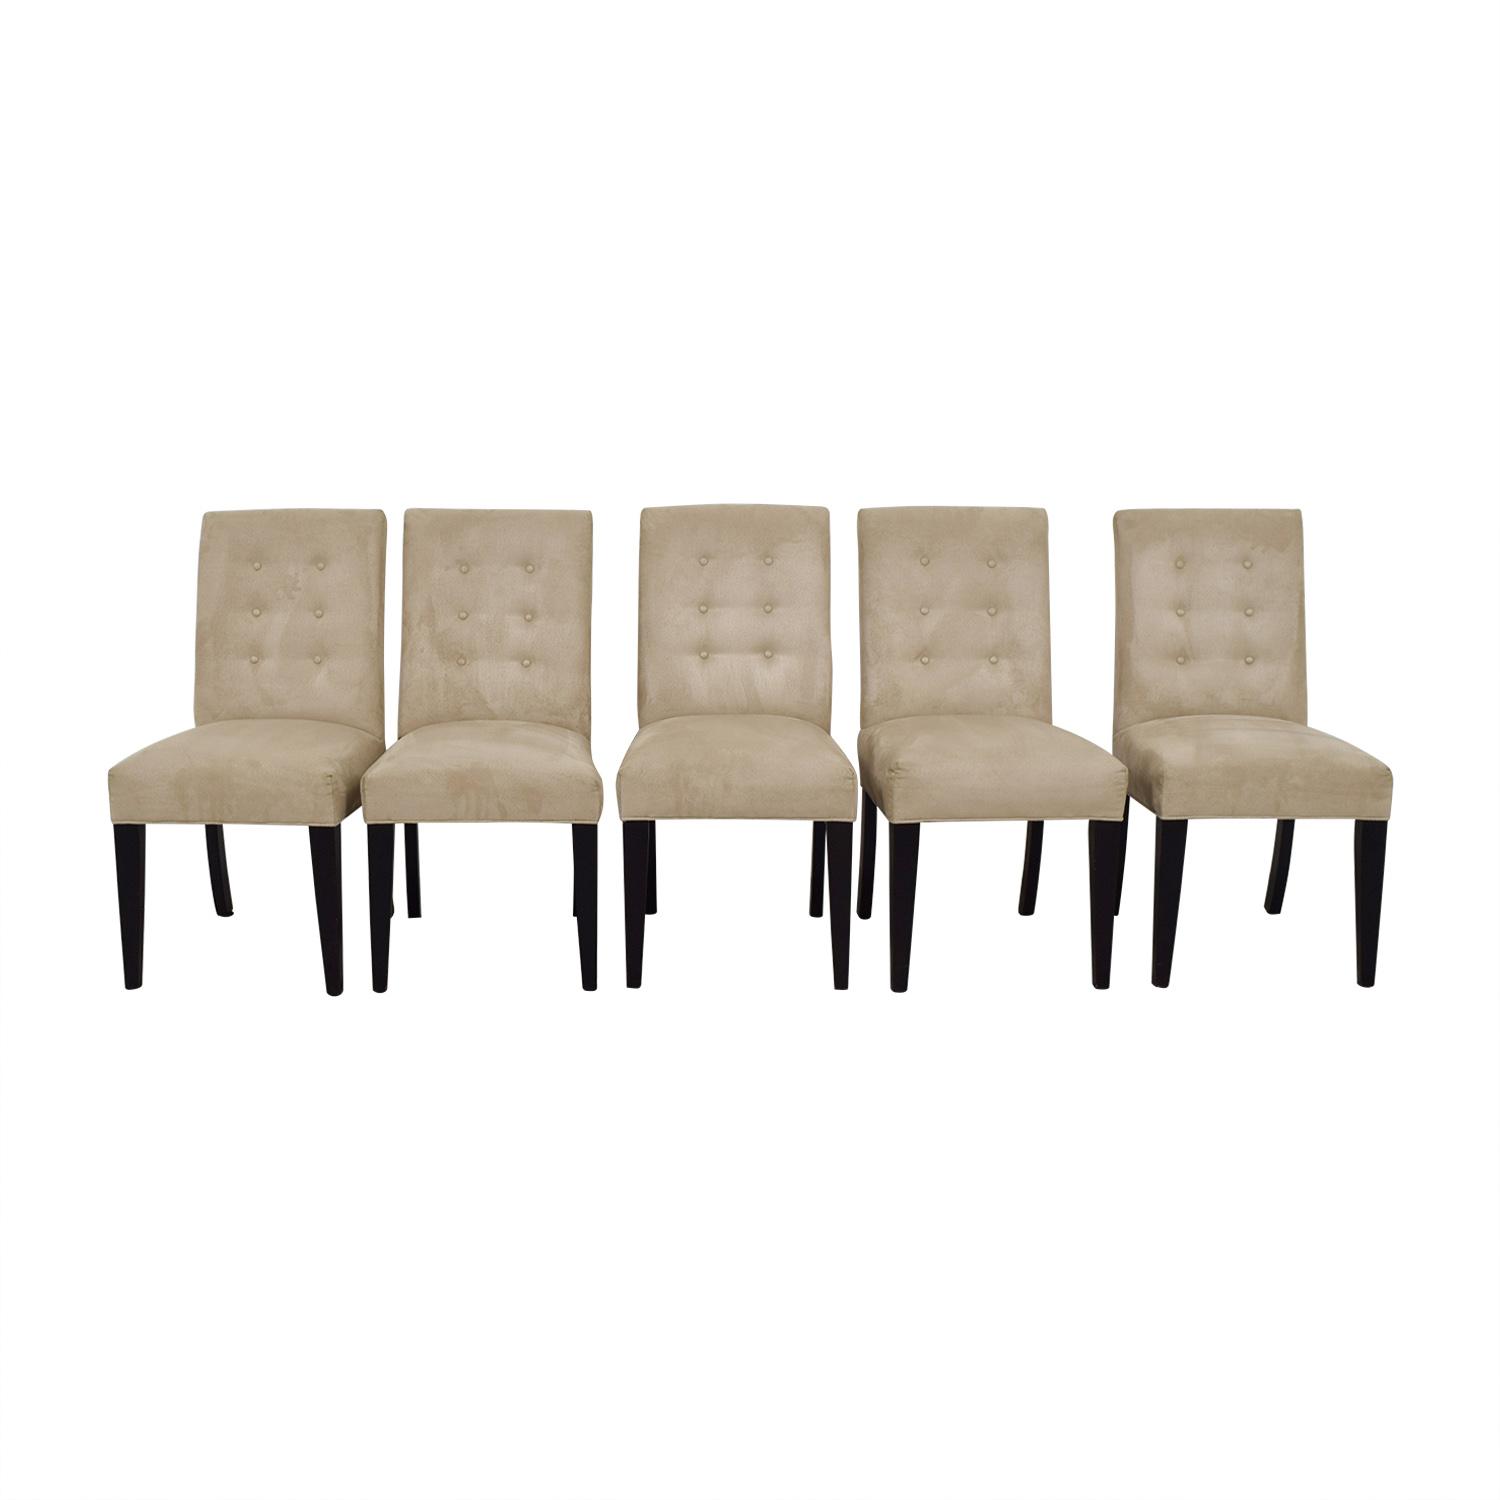 Mitchell Gold + Bob Williams Mitchell Gold + Bob Williams Grey Tufted Chairs for sale